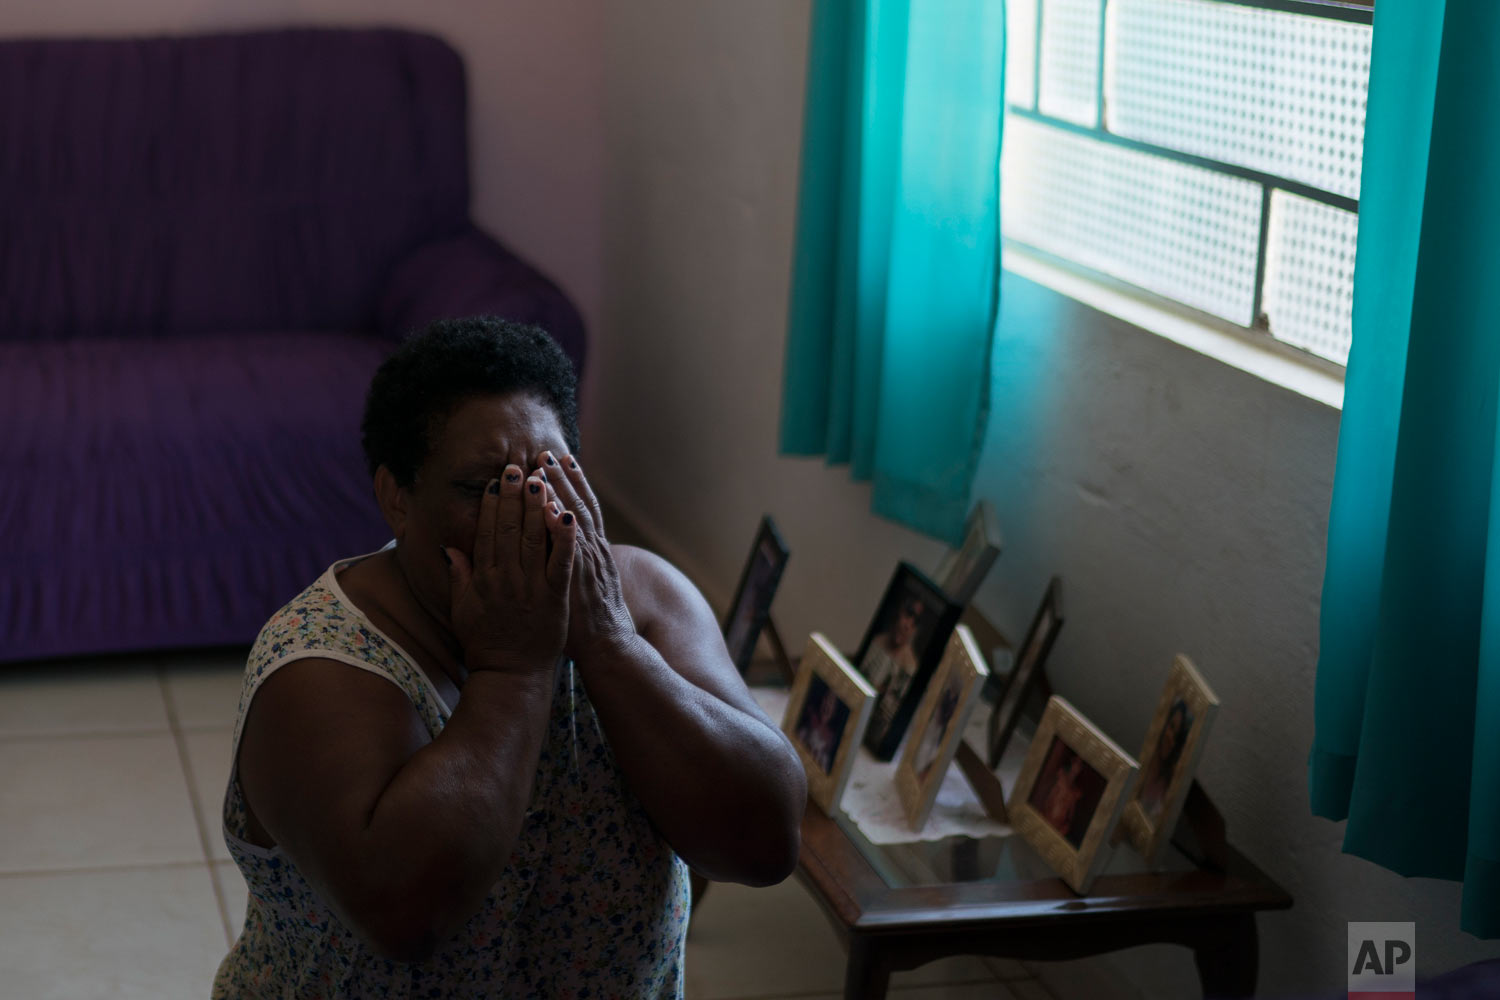 Malvina Firmina Nunes prays on her knees at home in Brumadinho, Brazil, Jan. 30, 2019, while one of her four adult children remains missing following a Vale dam collapsed. (AP Photo/Leo Correa)